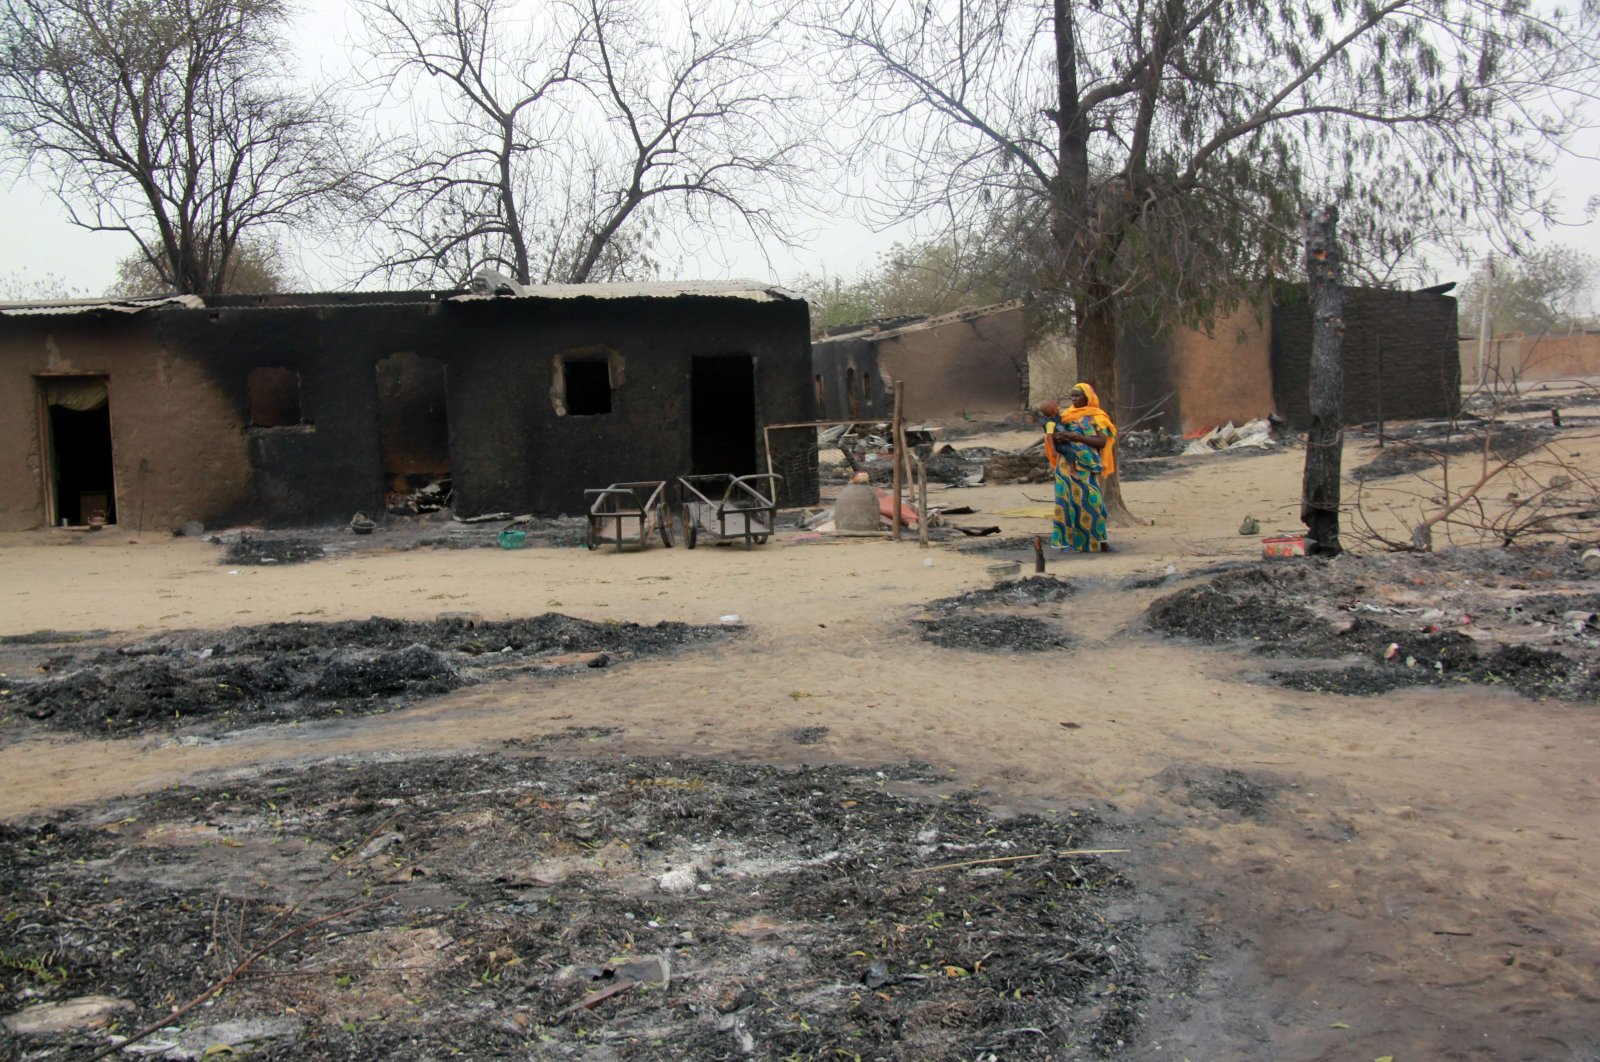 This file photo shows a woman walking past burnt houses after a two-day clash between officers of the Joint Task Force and members of Boko Haram, in Baga, Borno state, Nigeria, April 21, 2013. (AFP Photo)